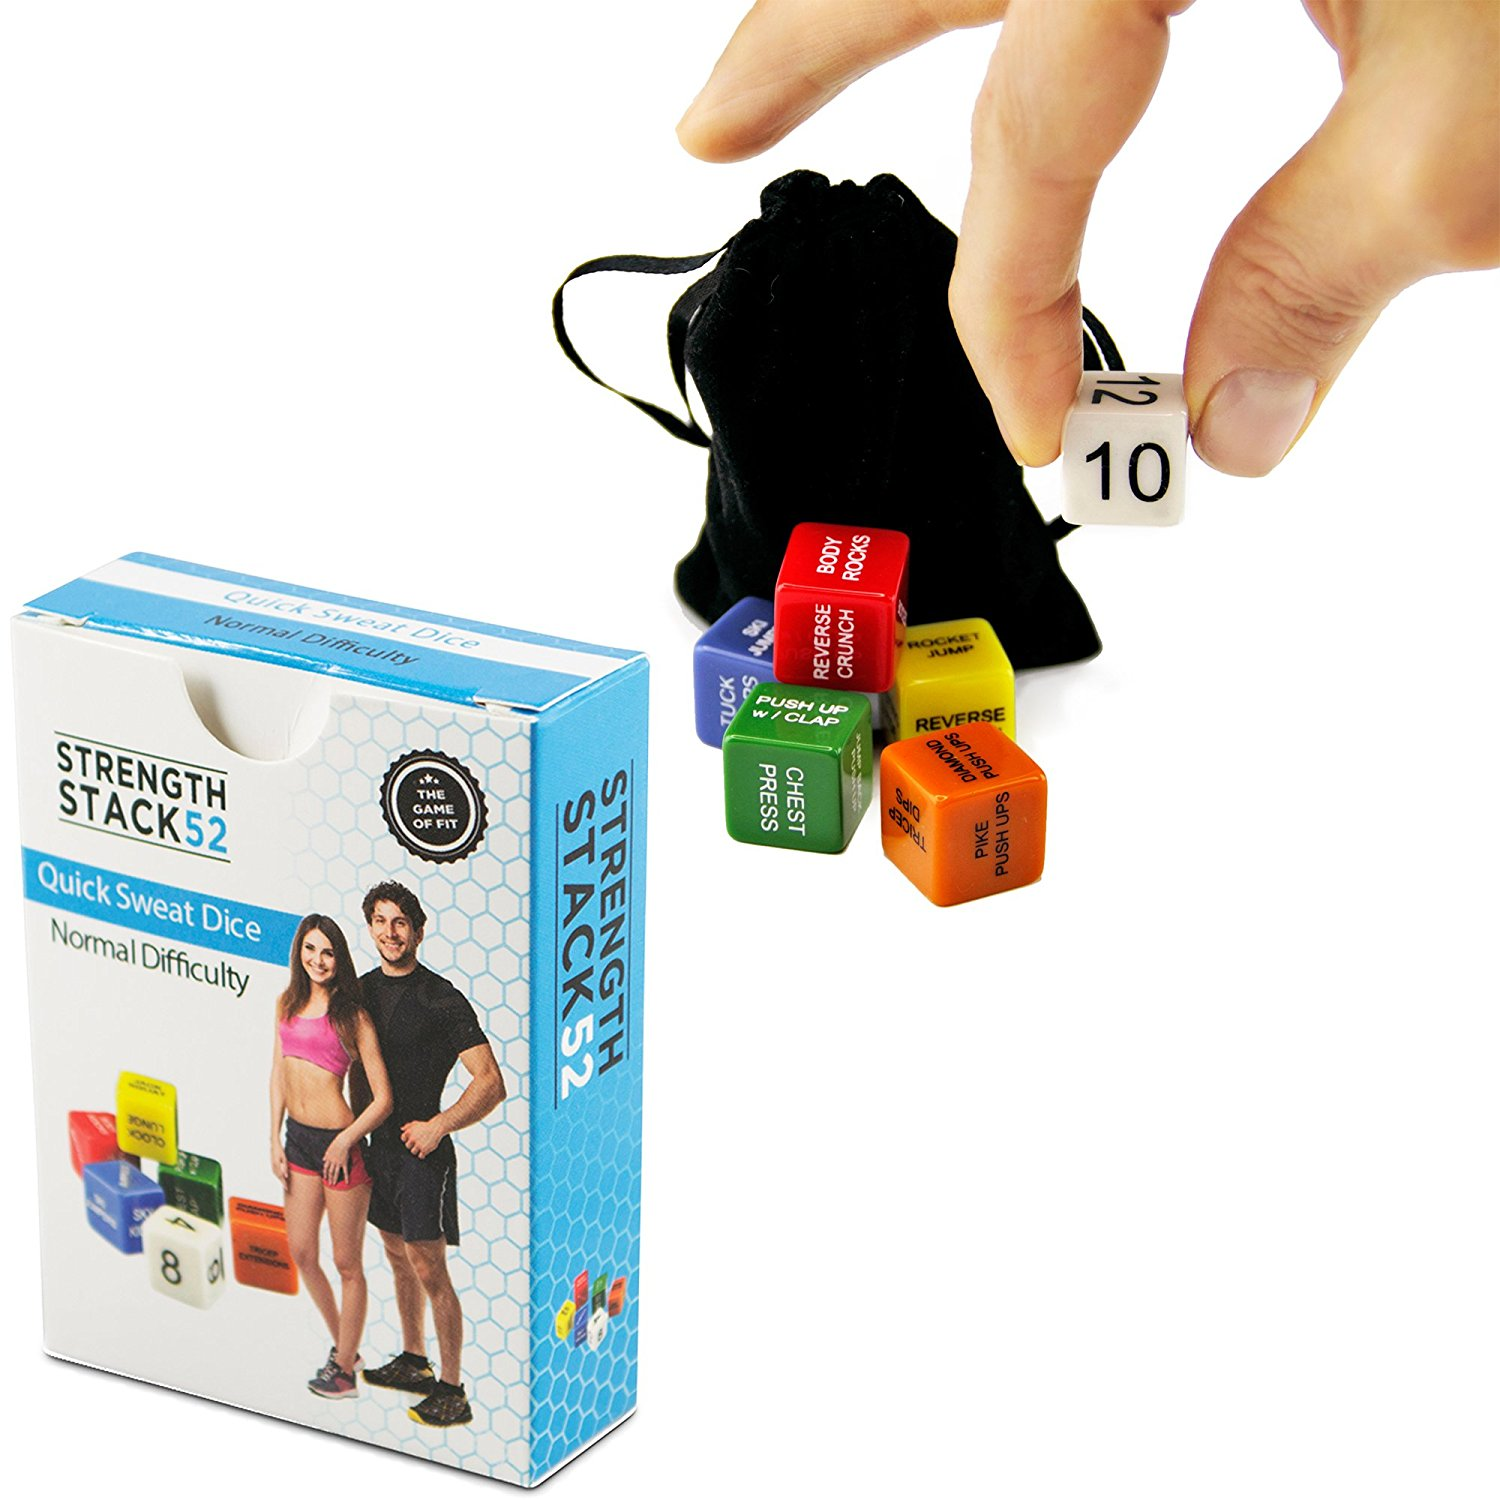 Fitness Dice by Stack 52